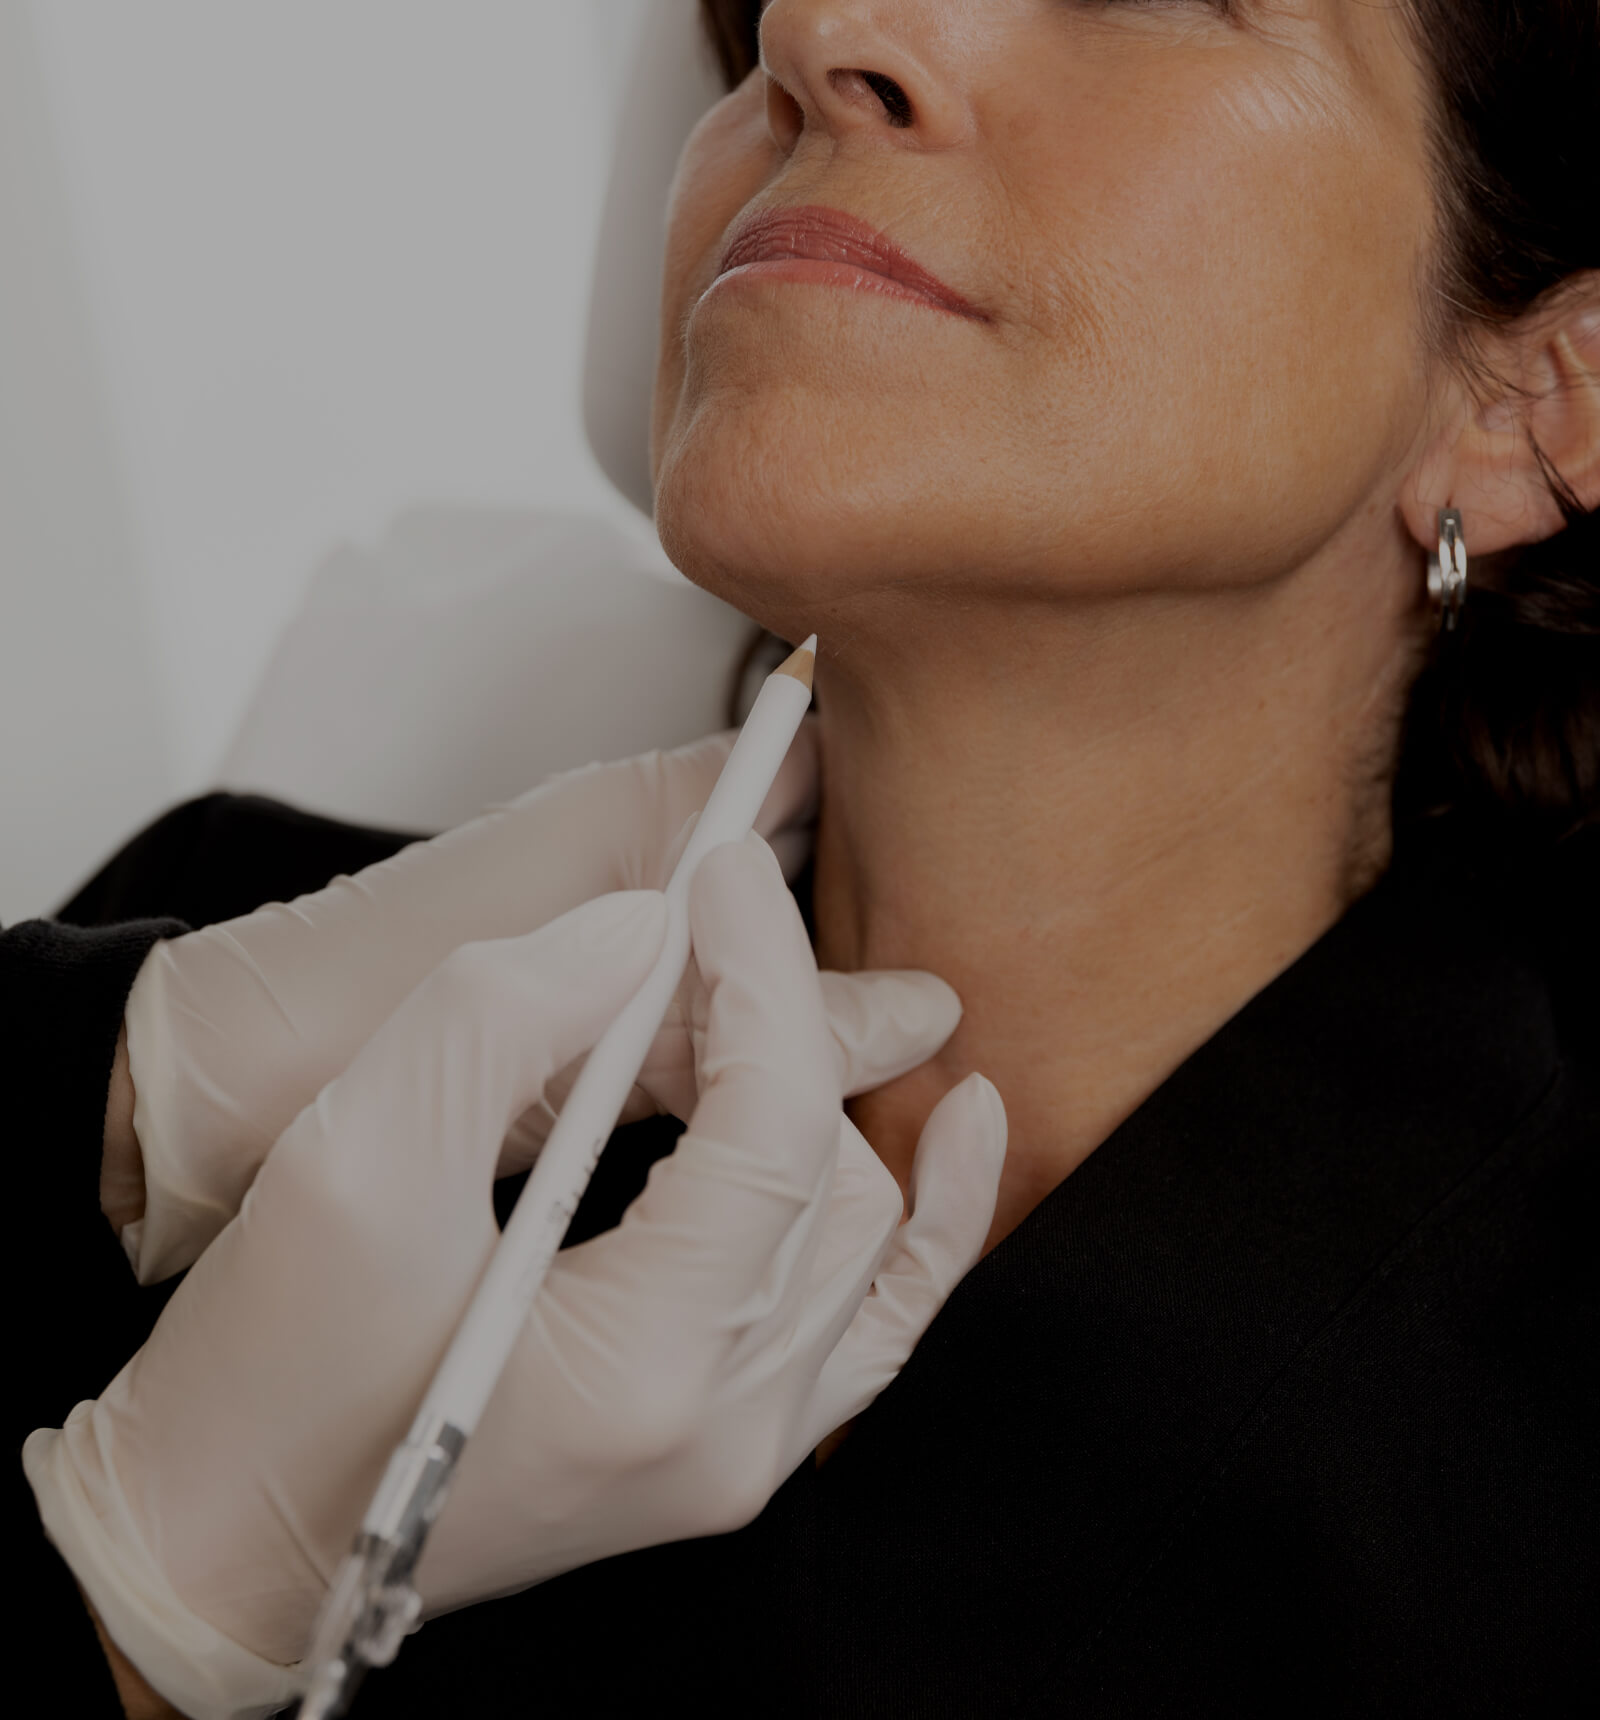 A Clinique Chloé technician delimiting the area to be treated with the TightSculpting laser in the neck of a patient